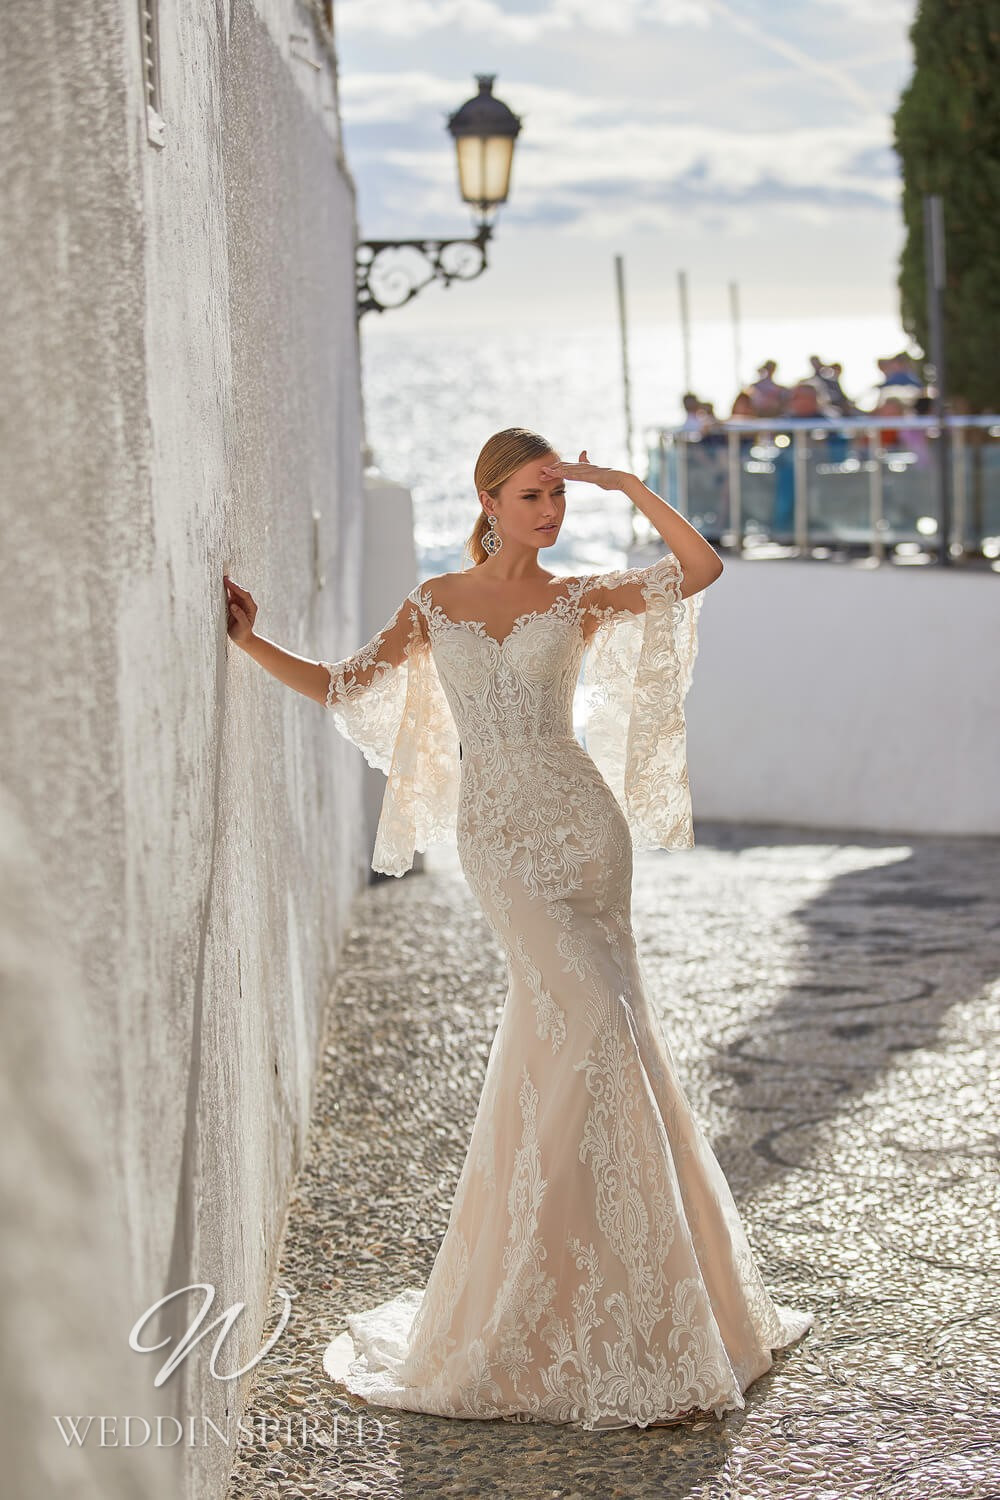 An Essential by Lussano 2021 lace mermaid wedding dress with bell sleeves